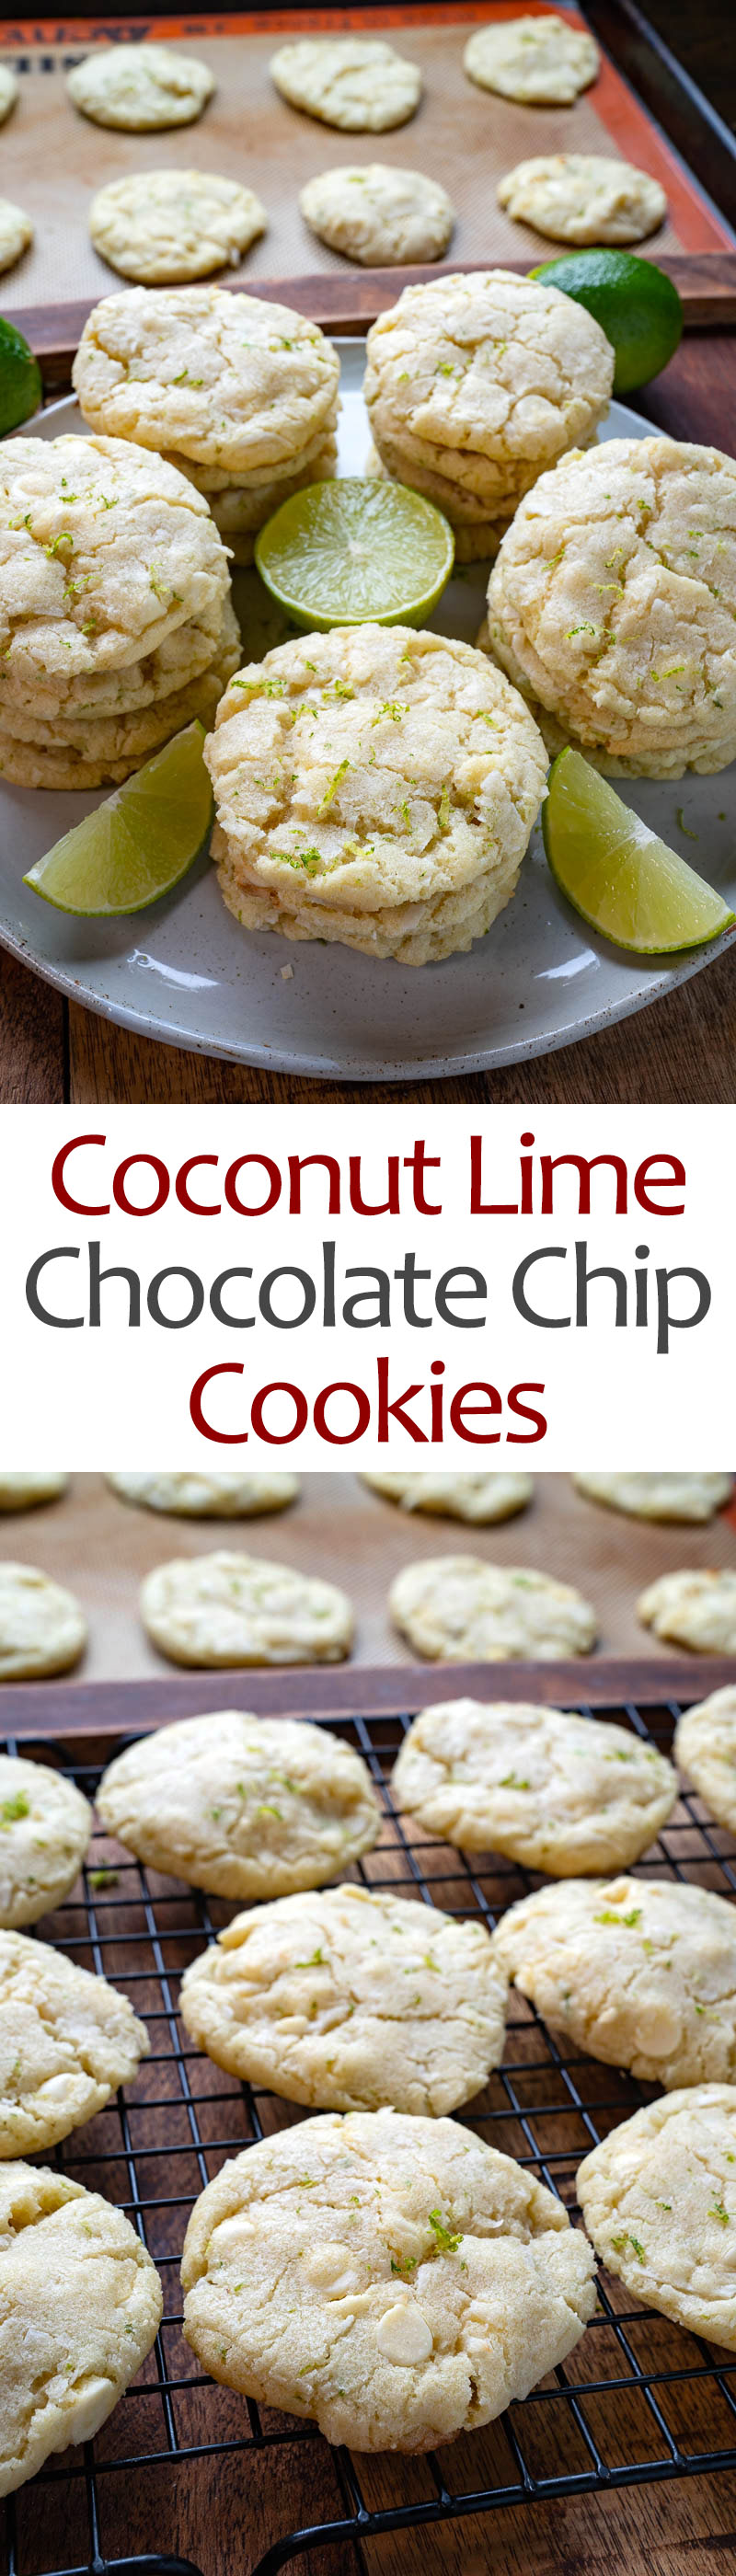 Coconut Lime White Chocolate Chip Cookies